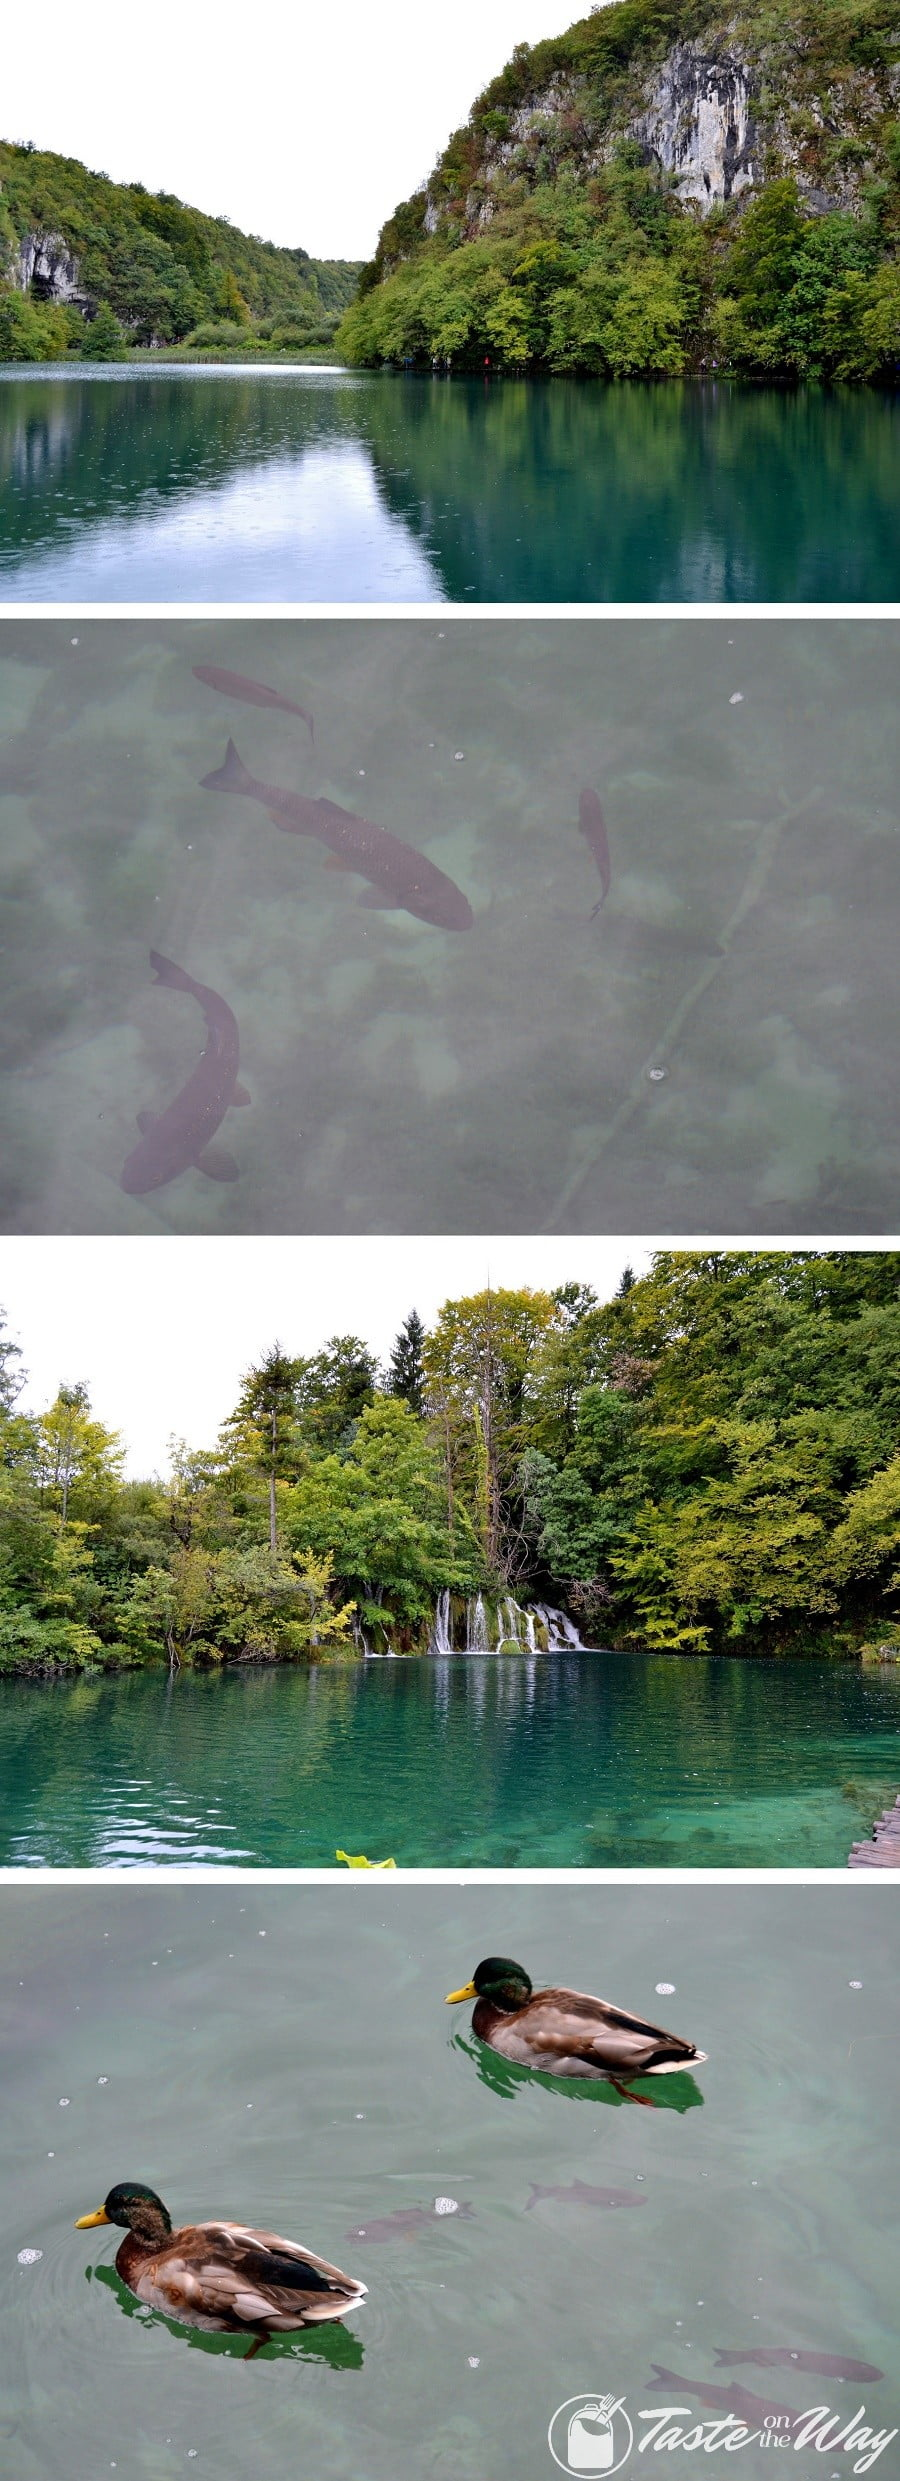 One of the top #tips visiting #Plitvice Lakes National Park in #Croatia is to look out for the wild life. Check out for more! #travel #photography @tasteontheway